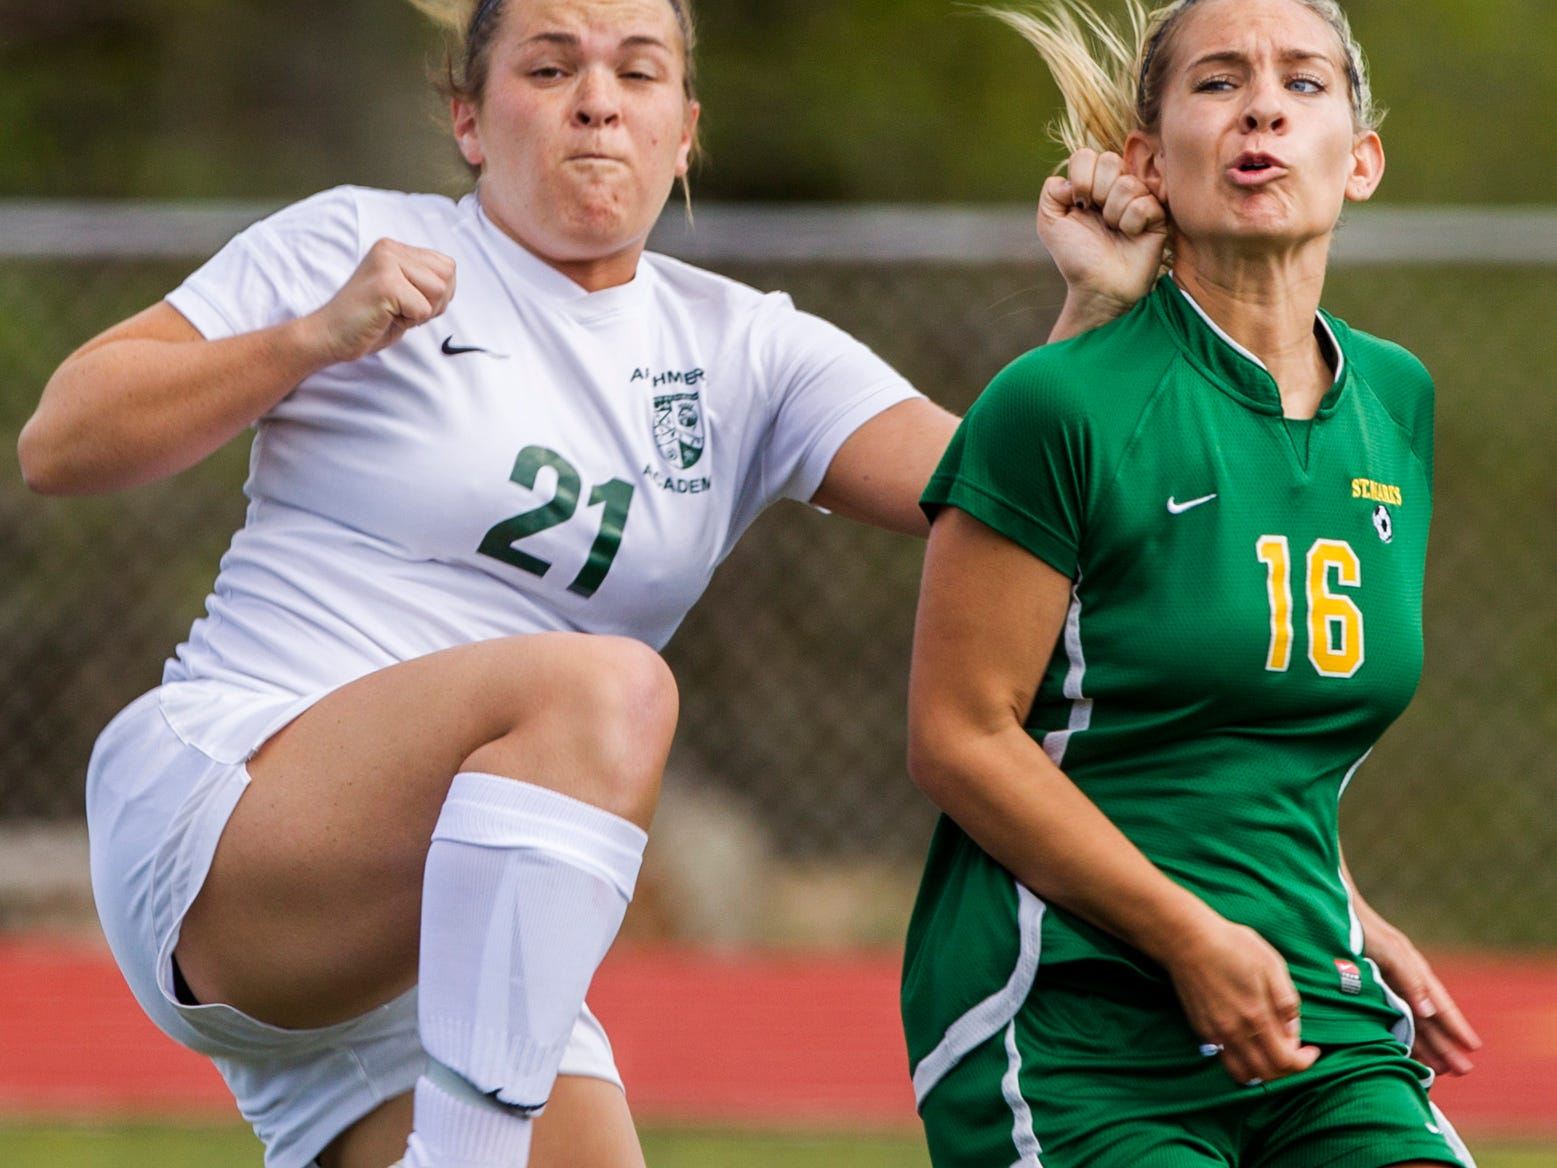 Archmere's Gillian Sweeny collides with St. Mark's Chelsea Vincelette as the ball enters the box during a game at Archmere Wednesday afternoon. Archmere defeated St. Mark's 2-1.